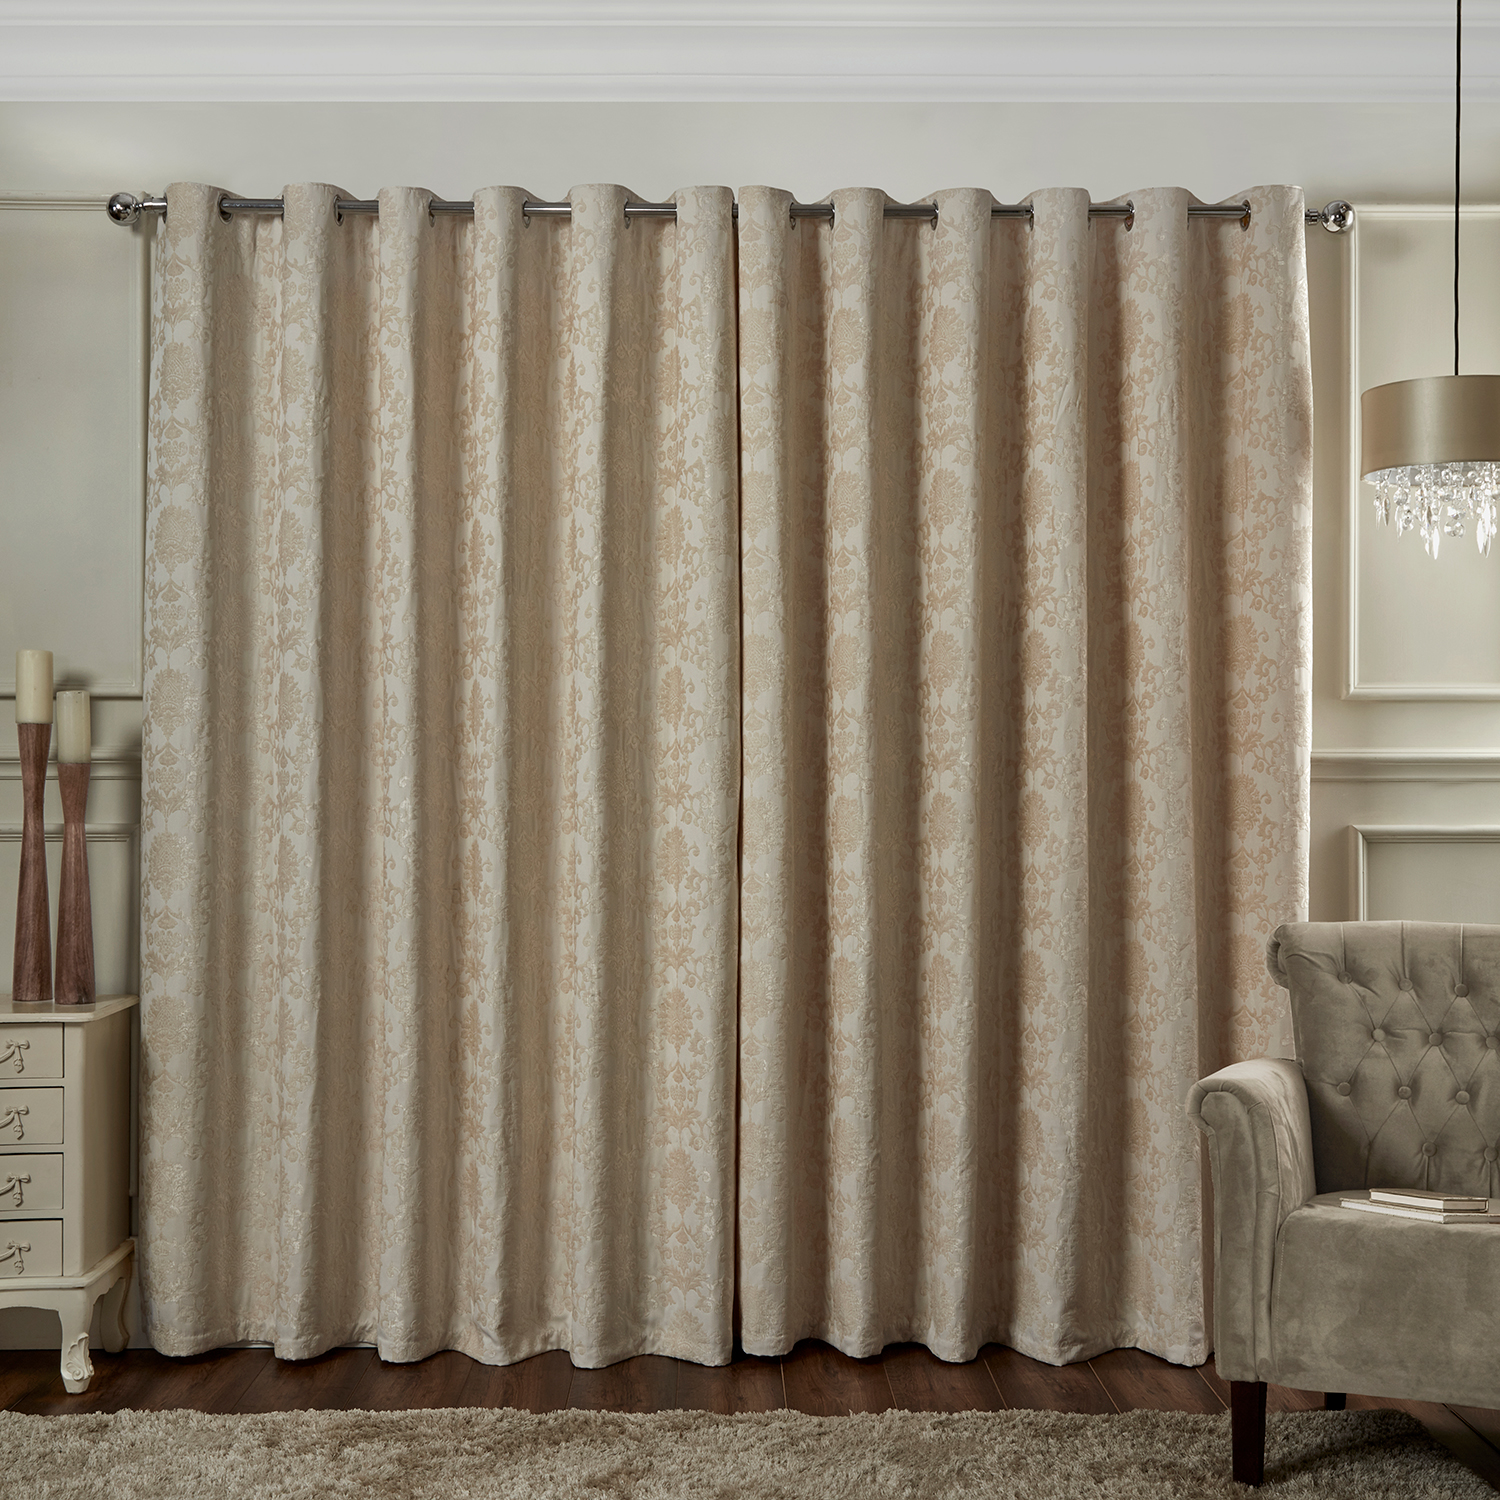 Home Store: Shelbourne Curtains